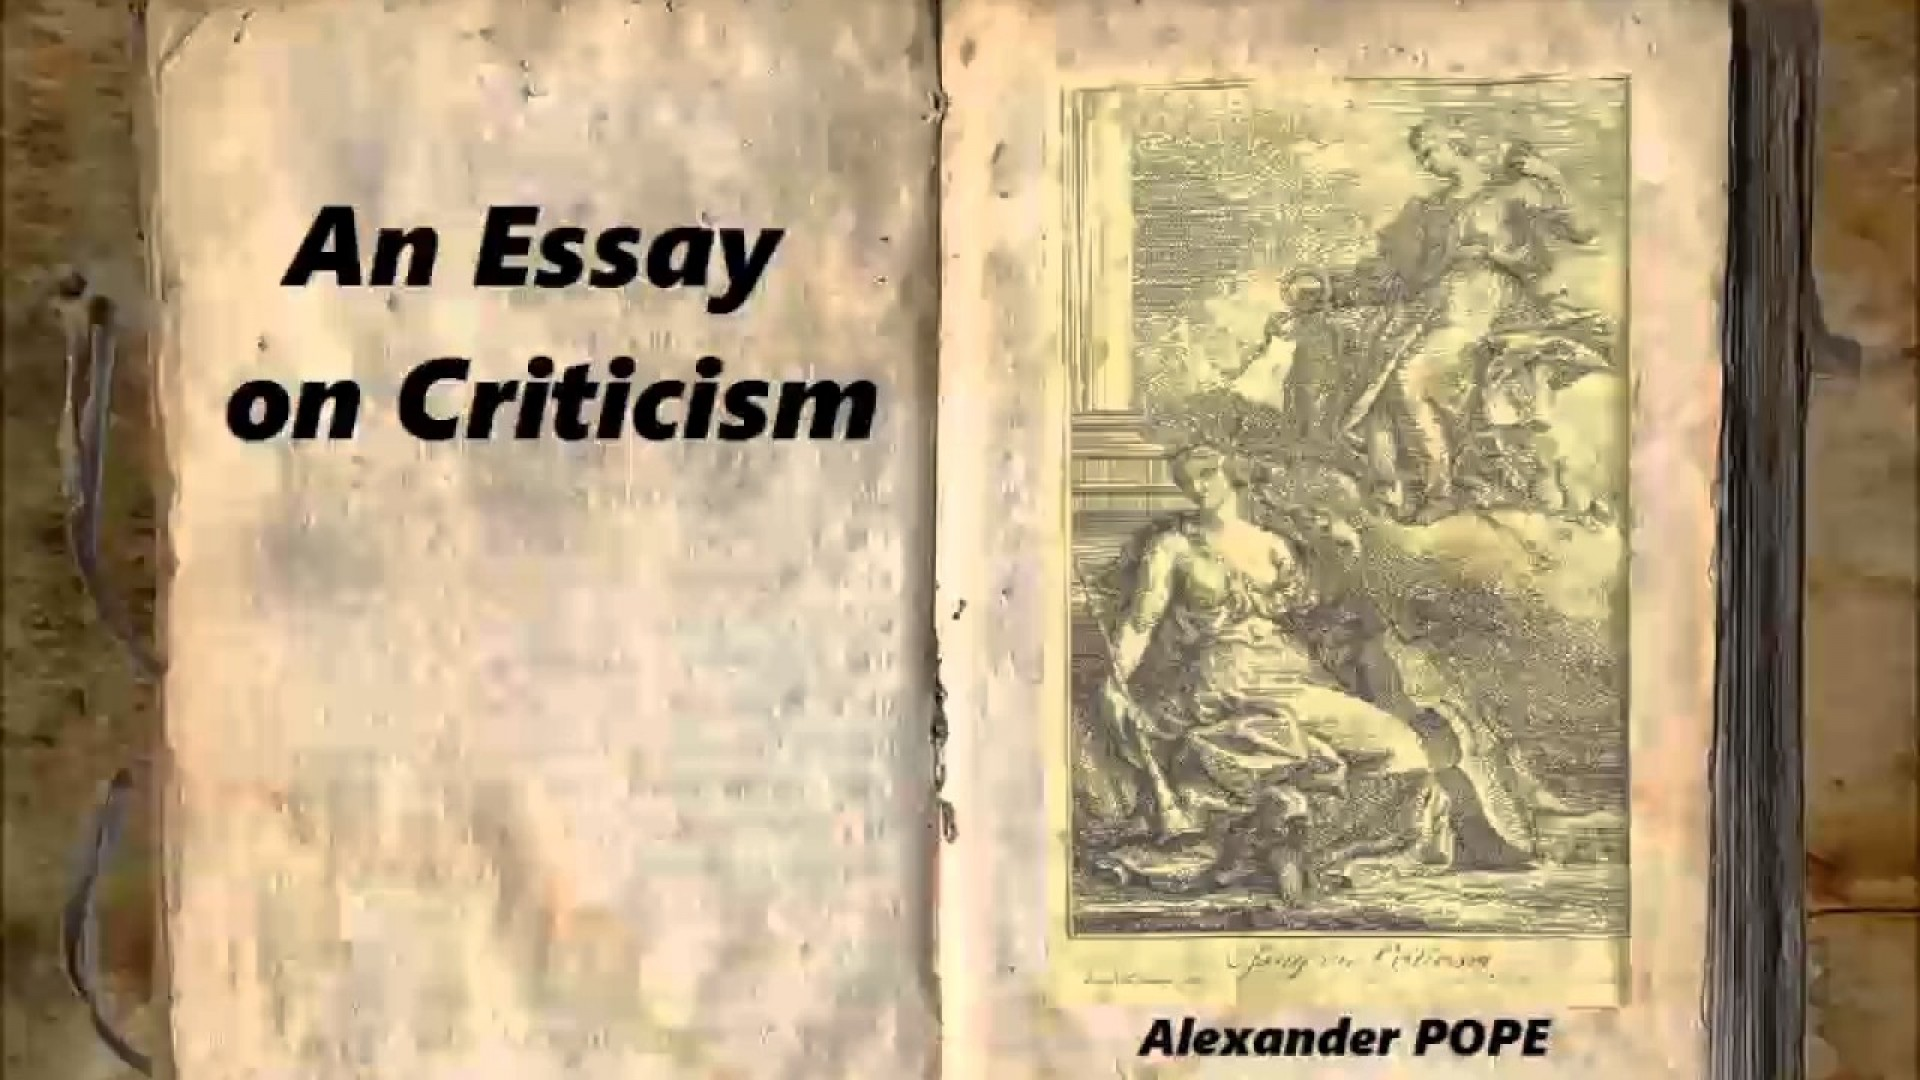 005 Maxresdefault Essay Example An On Sensational Criticism Lines 233 To 415 Part 3 Analysis Pdf 1920